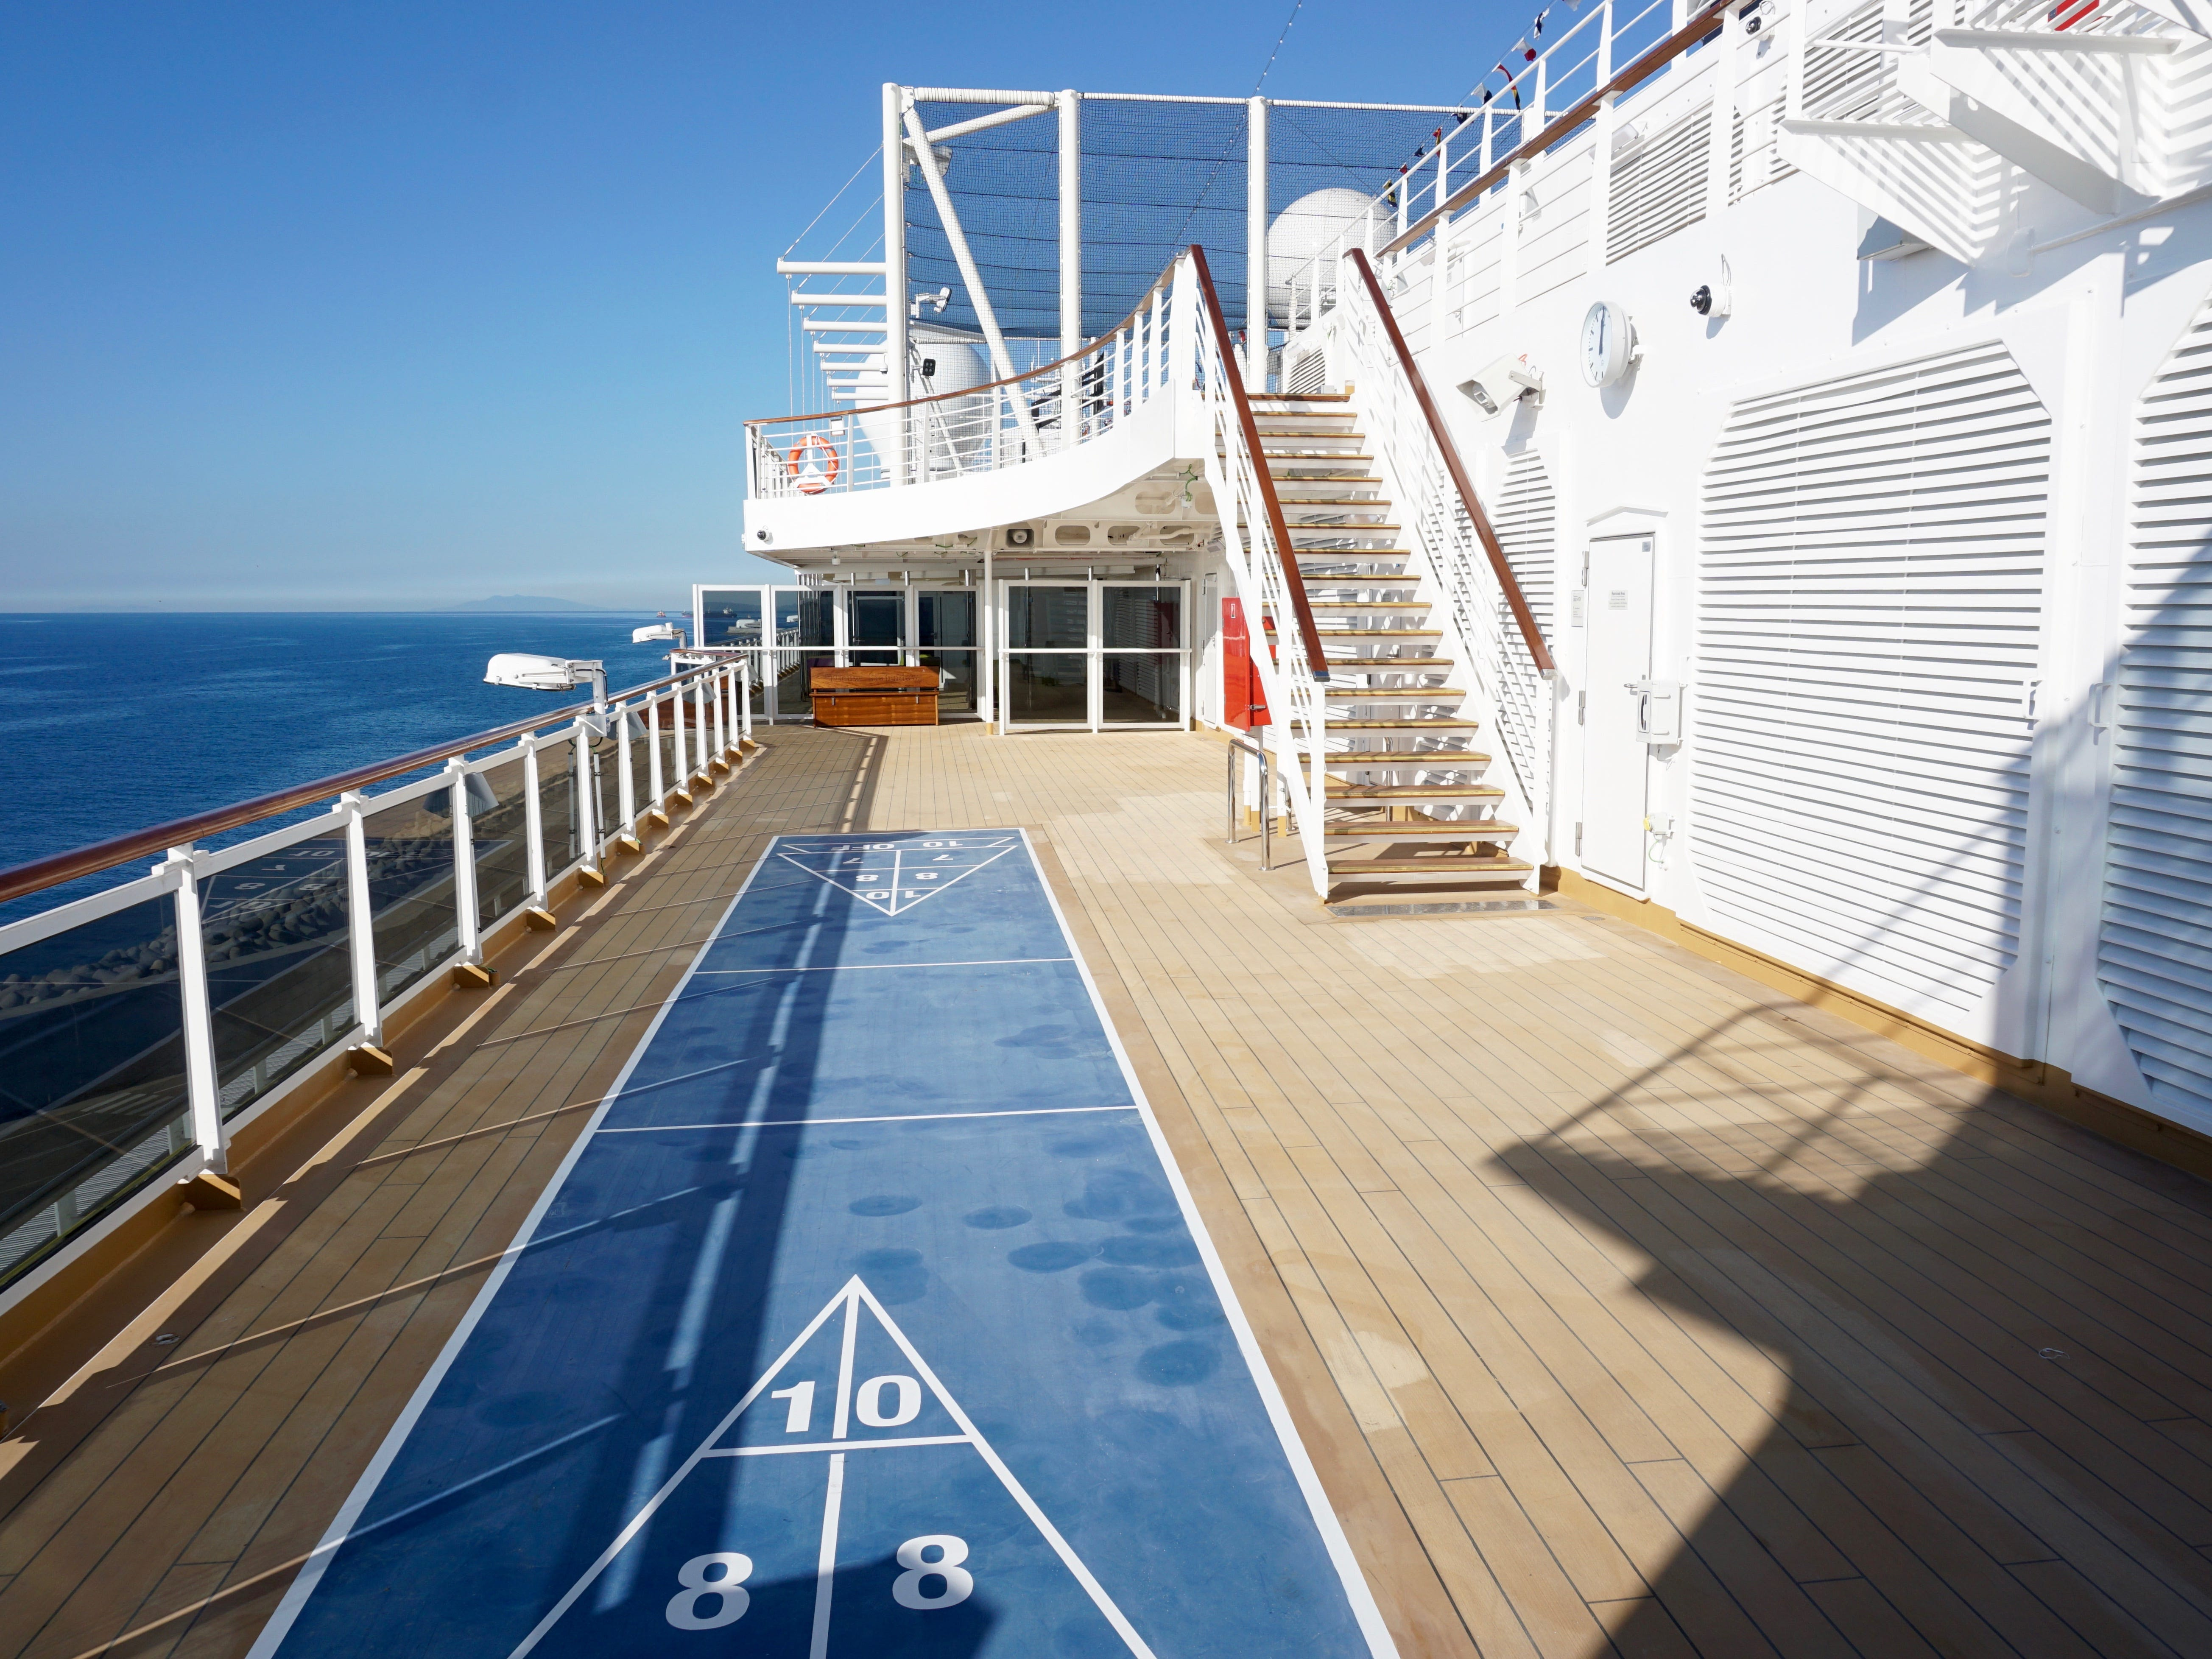 On either side of Deck 11, aft of the Lido Pool area, there are nooks with sunning space and shuffleboard courts.